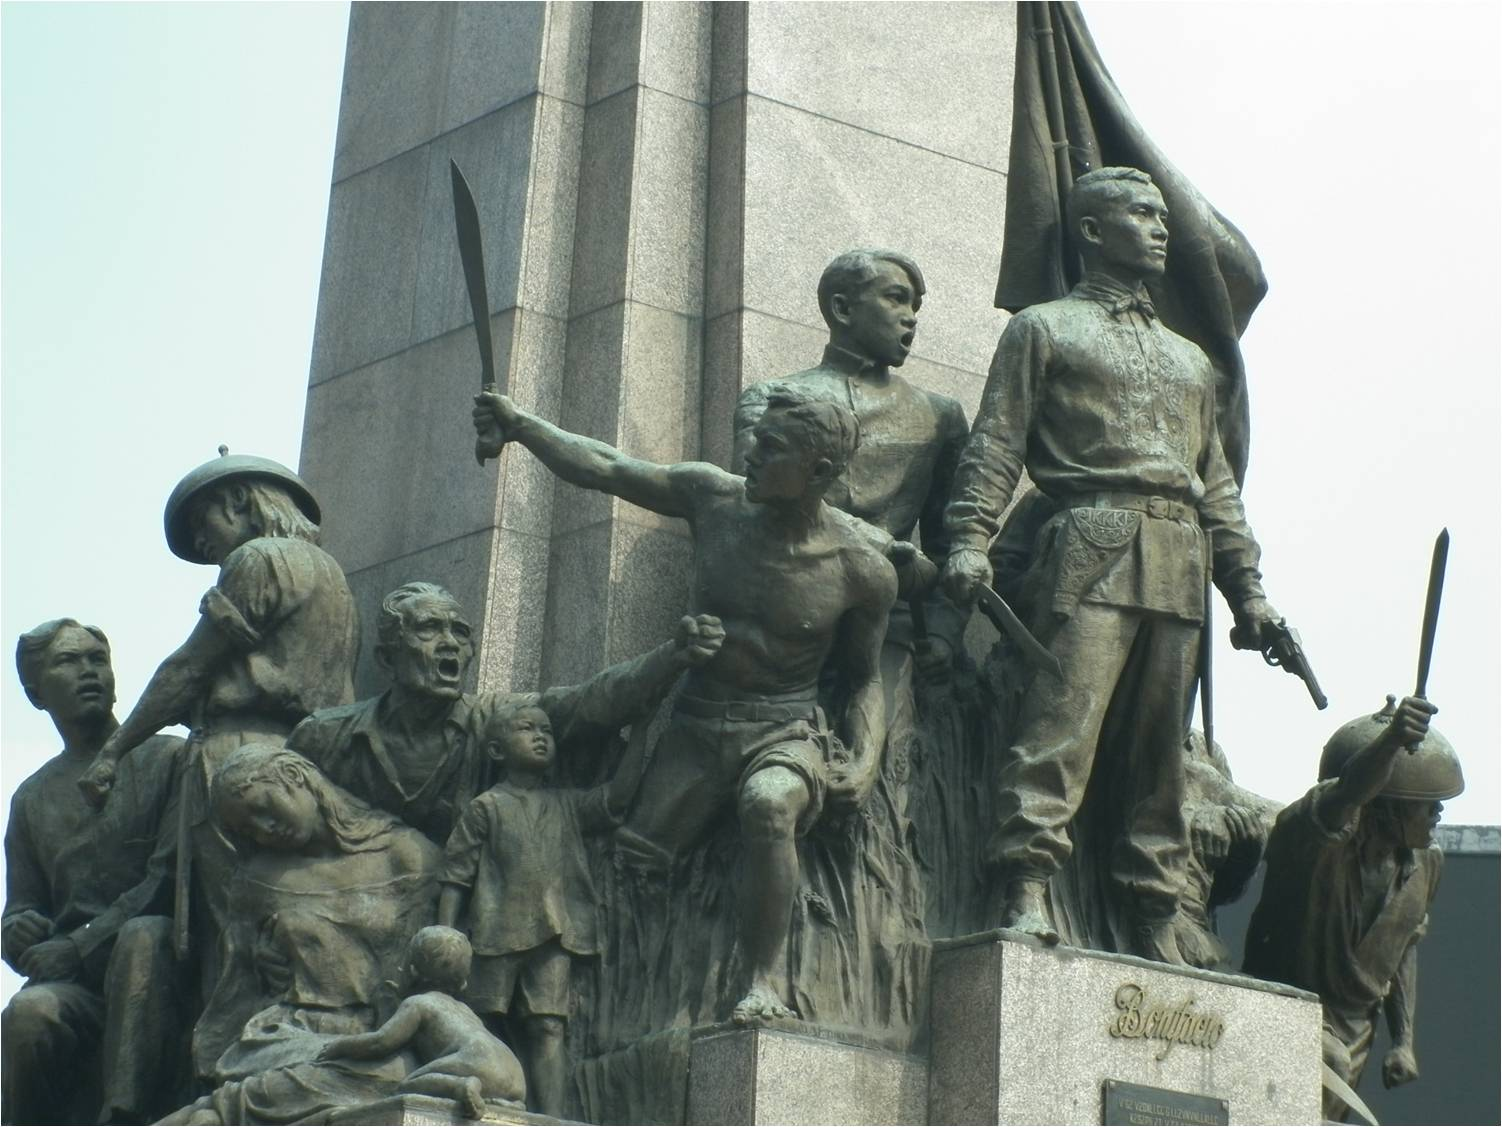 rizal and bonifacio It scholarly identifies jose rizal's collaborations with heroes like andres bonifacio, emilio aguinaldo, marcelo del pilar, antonio luna, mariano ponce, graciano lopez jaena, jose alejandrino, and edilberto evangelista featuring their respective lives, it also tackles controversial issues like luna's supposed diversion of the republic's.